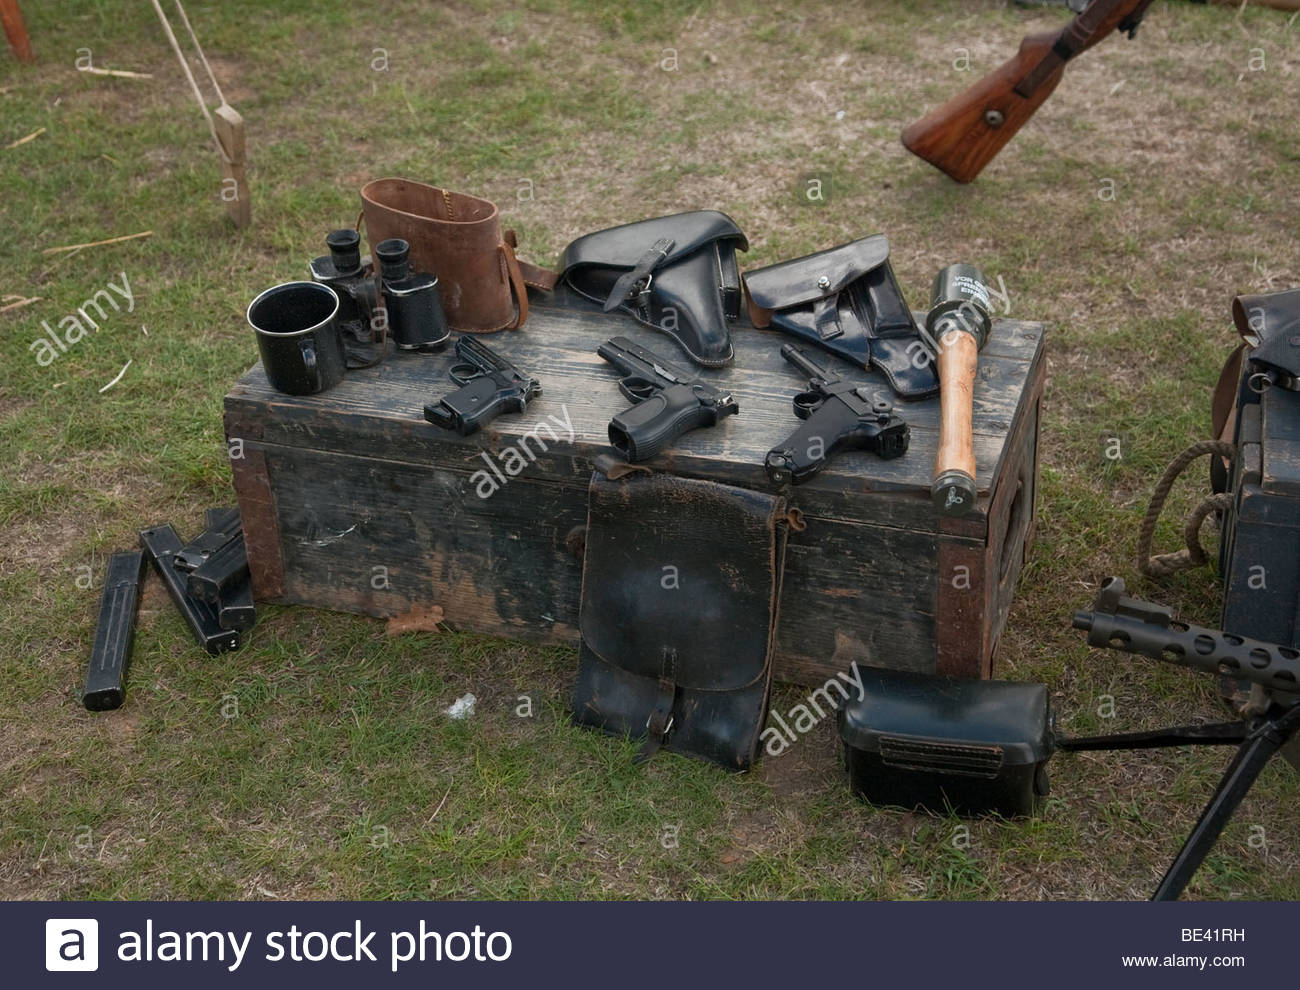 a collection of german second world war guns - Stock Image